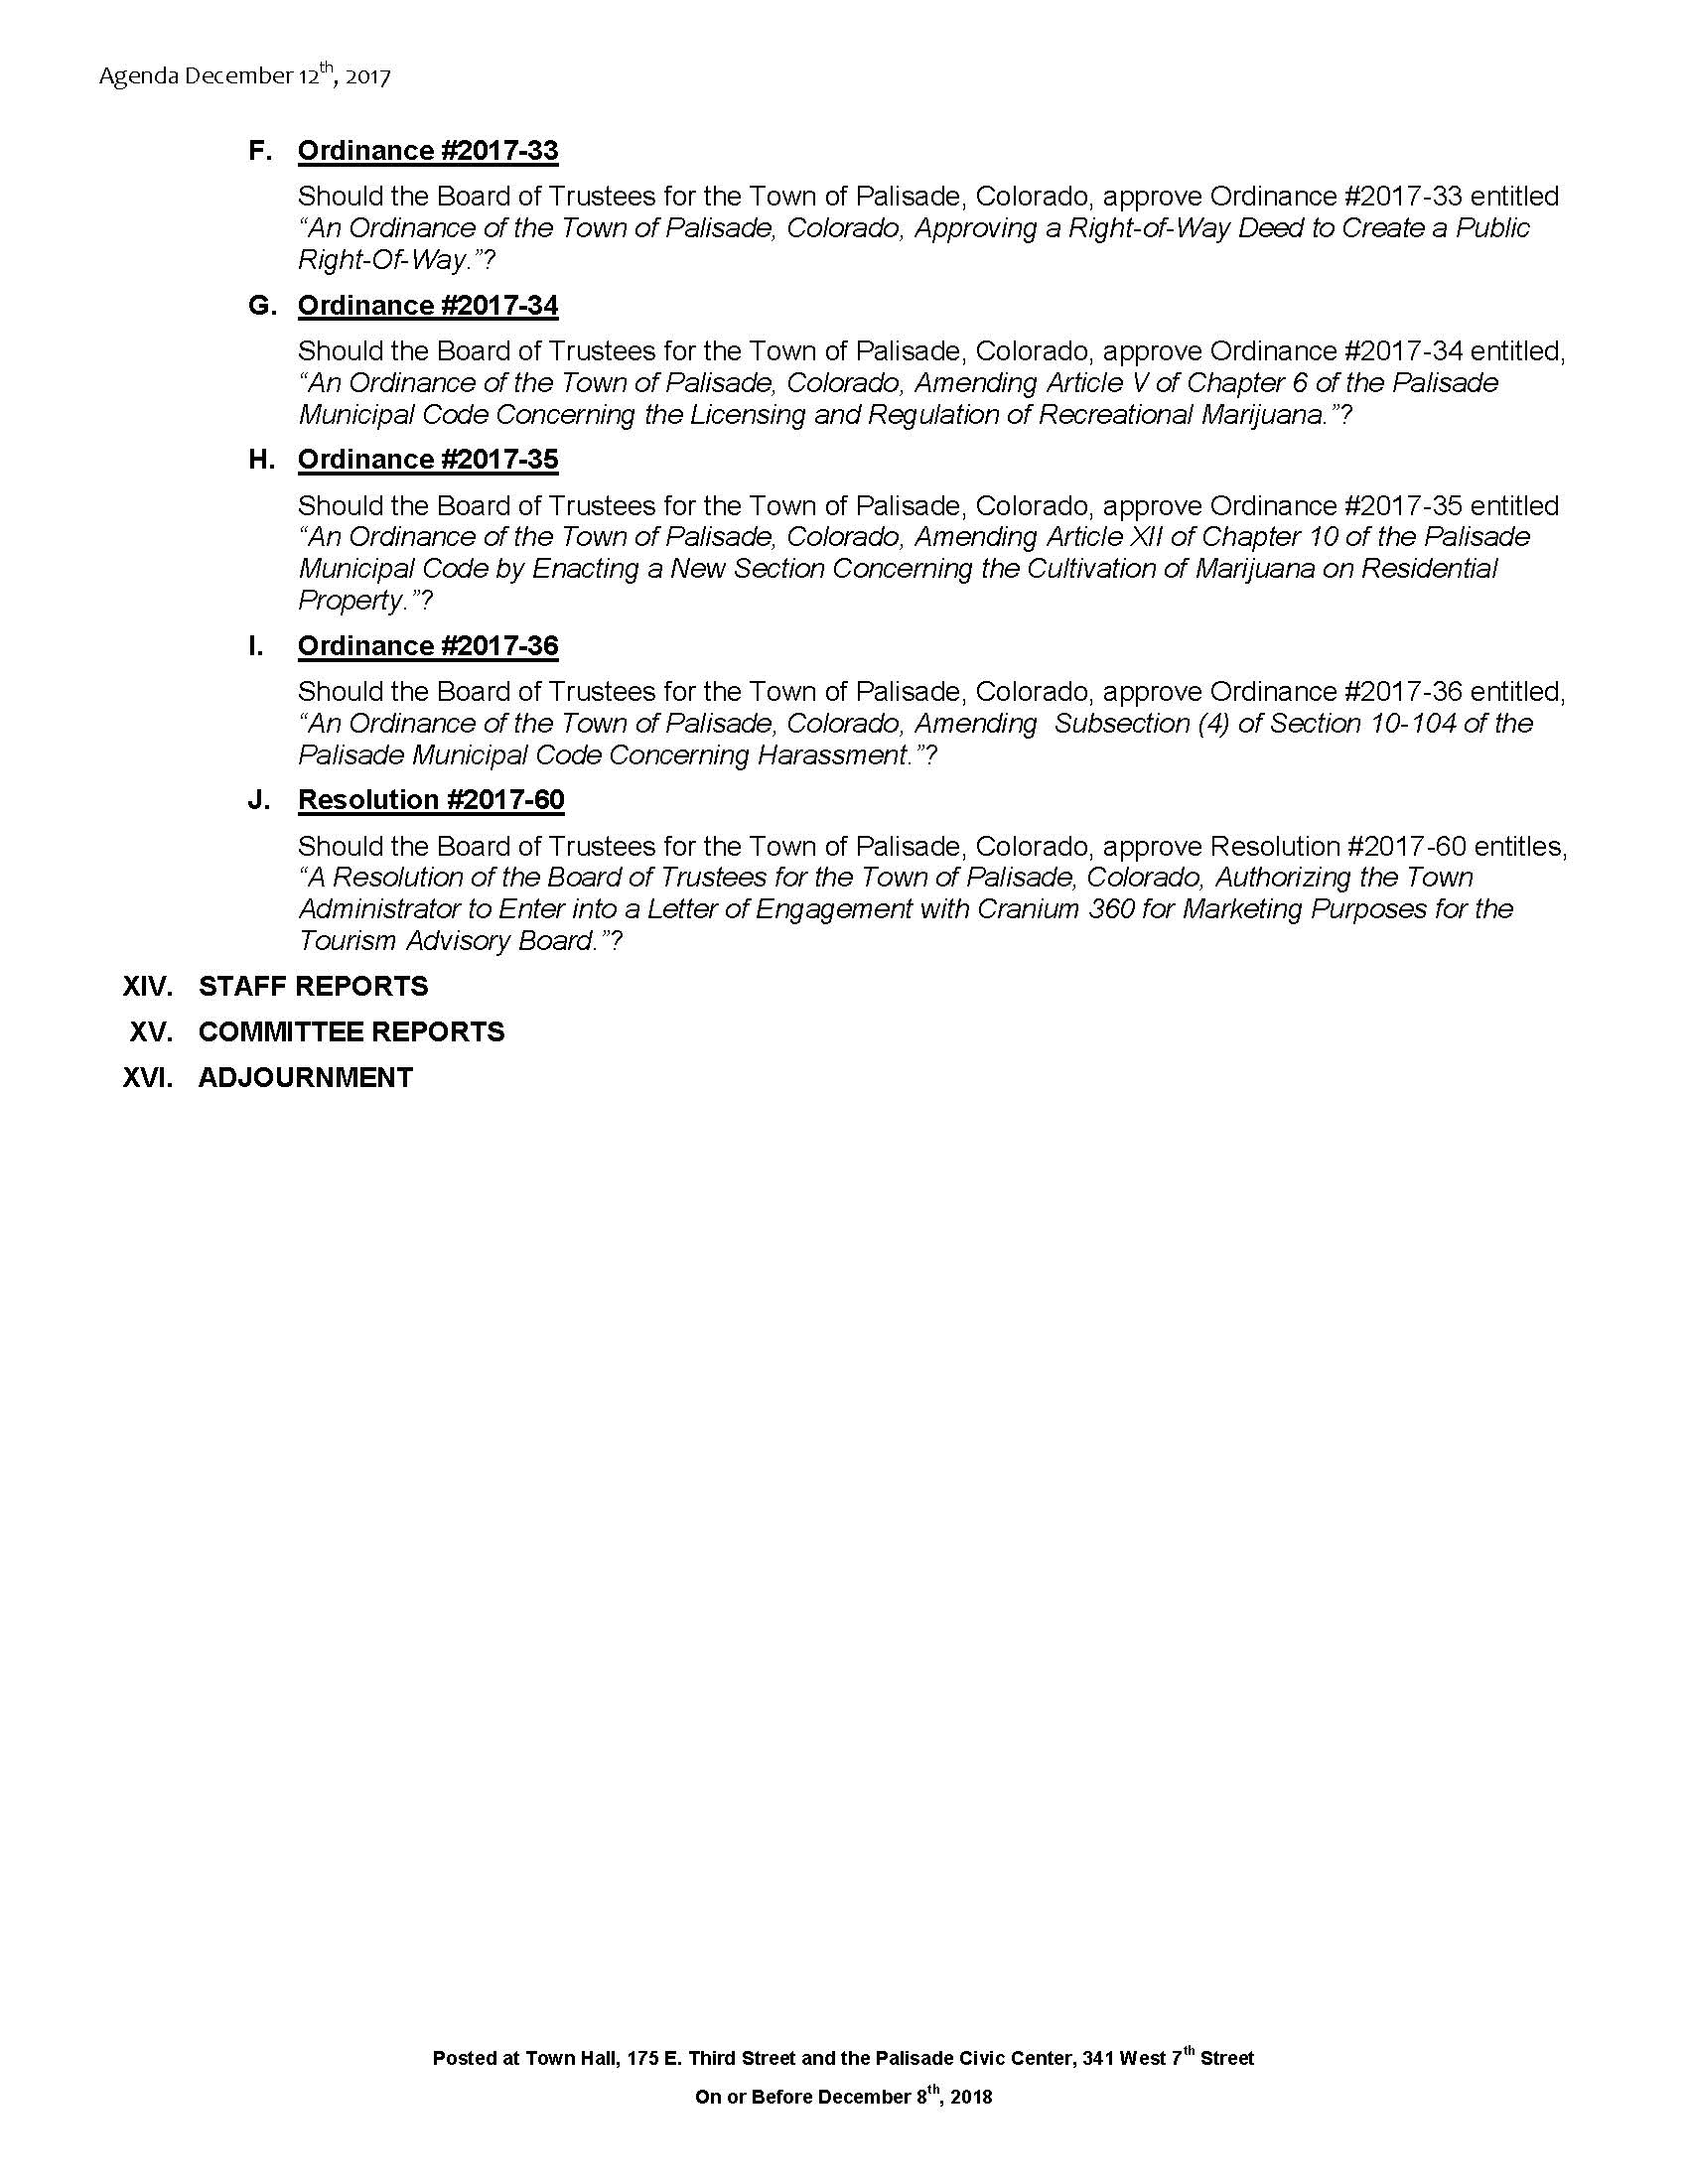 December 12th 2017 Board Meeting Agenda Page 3